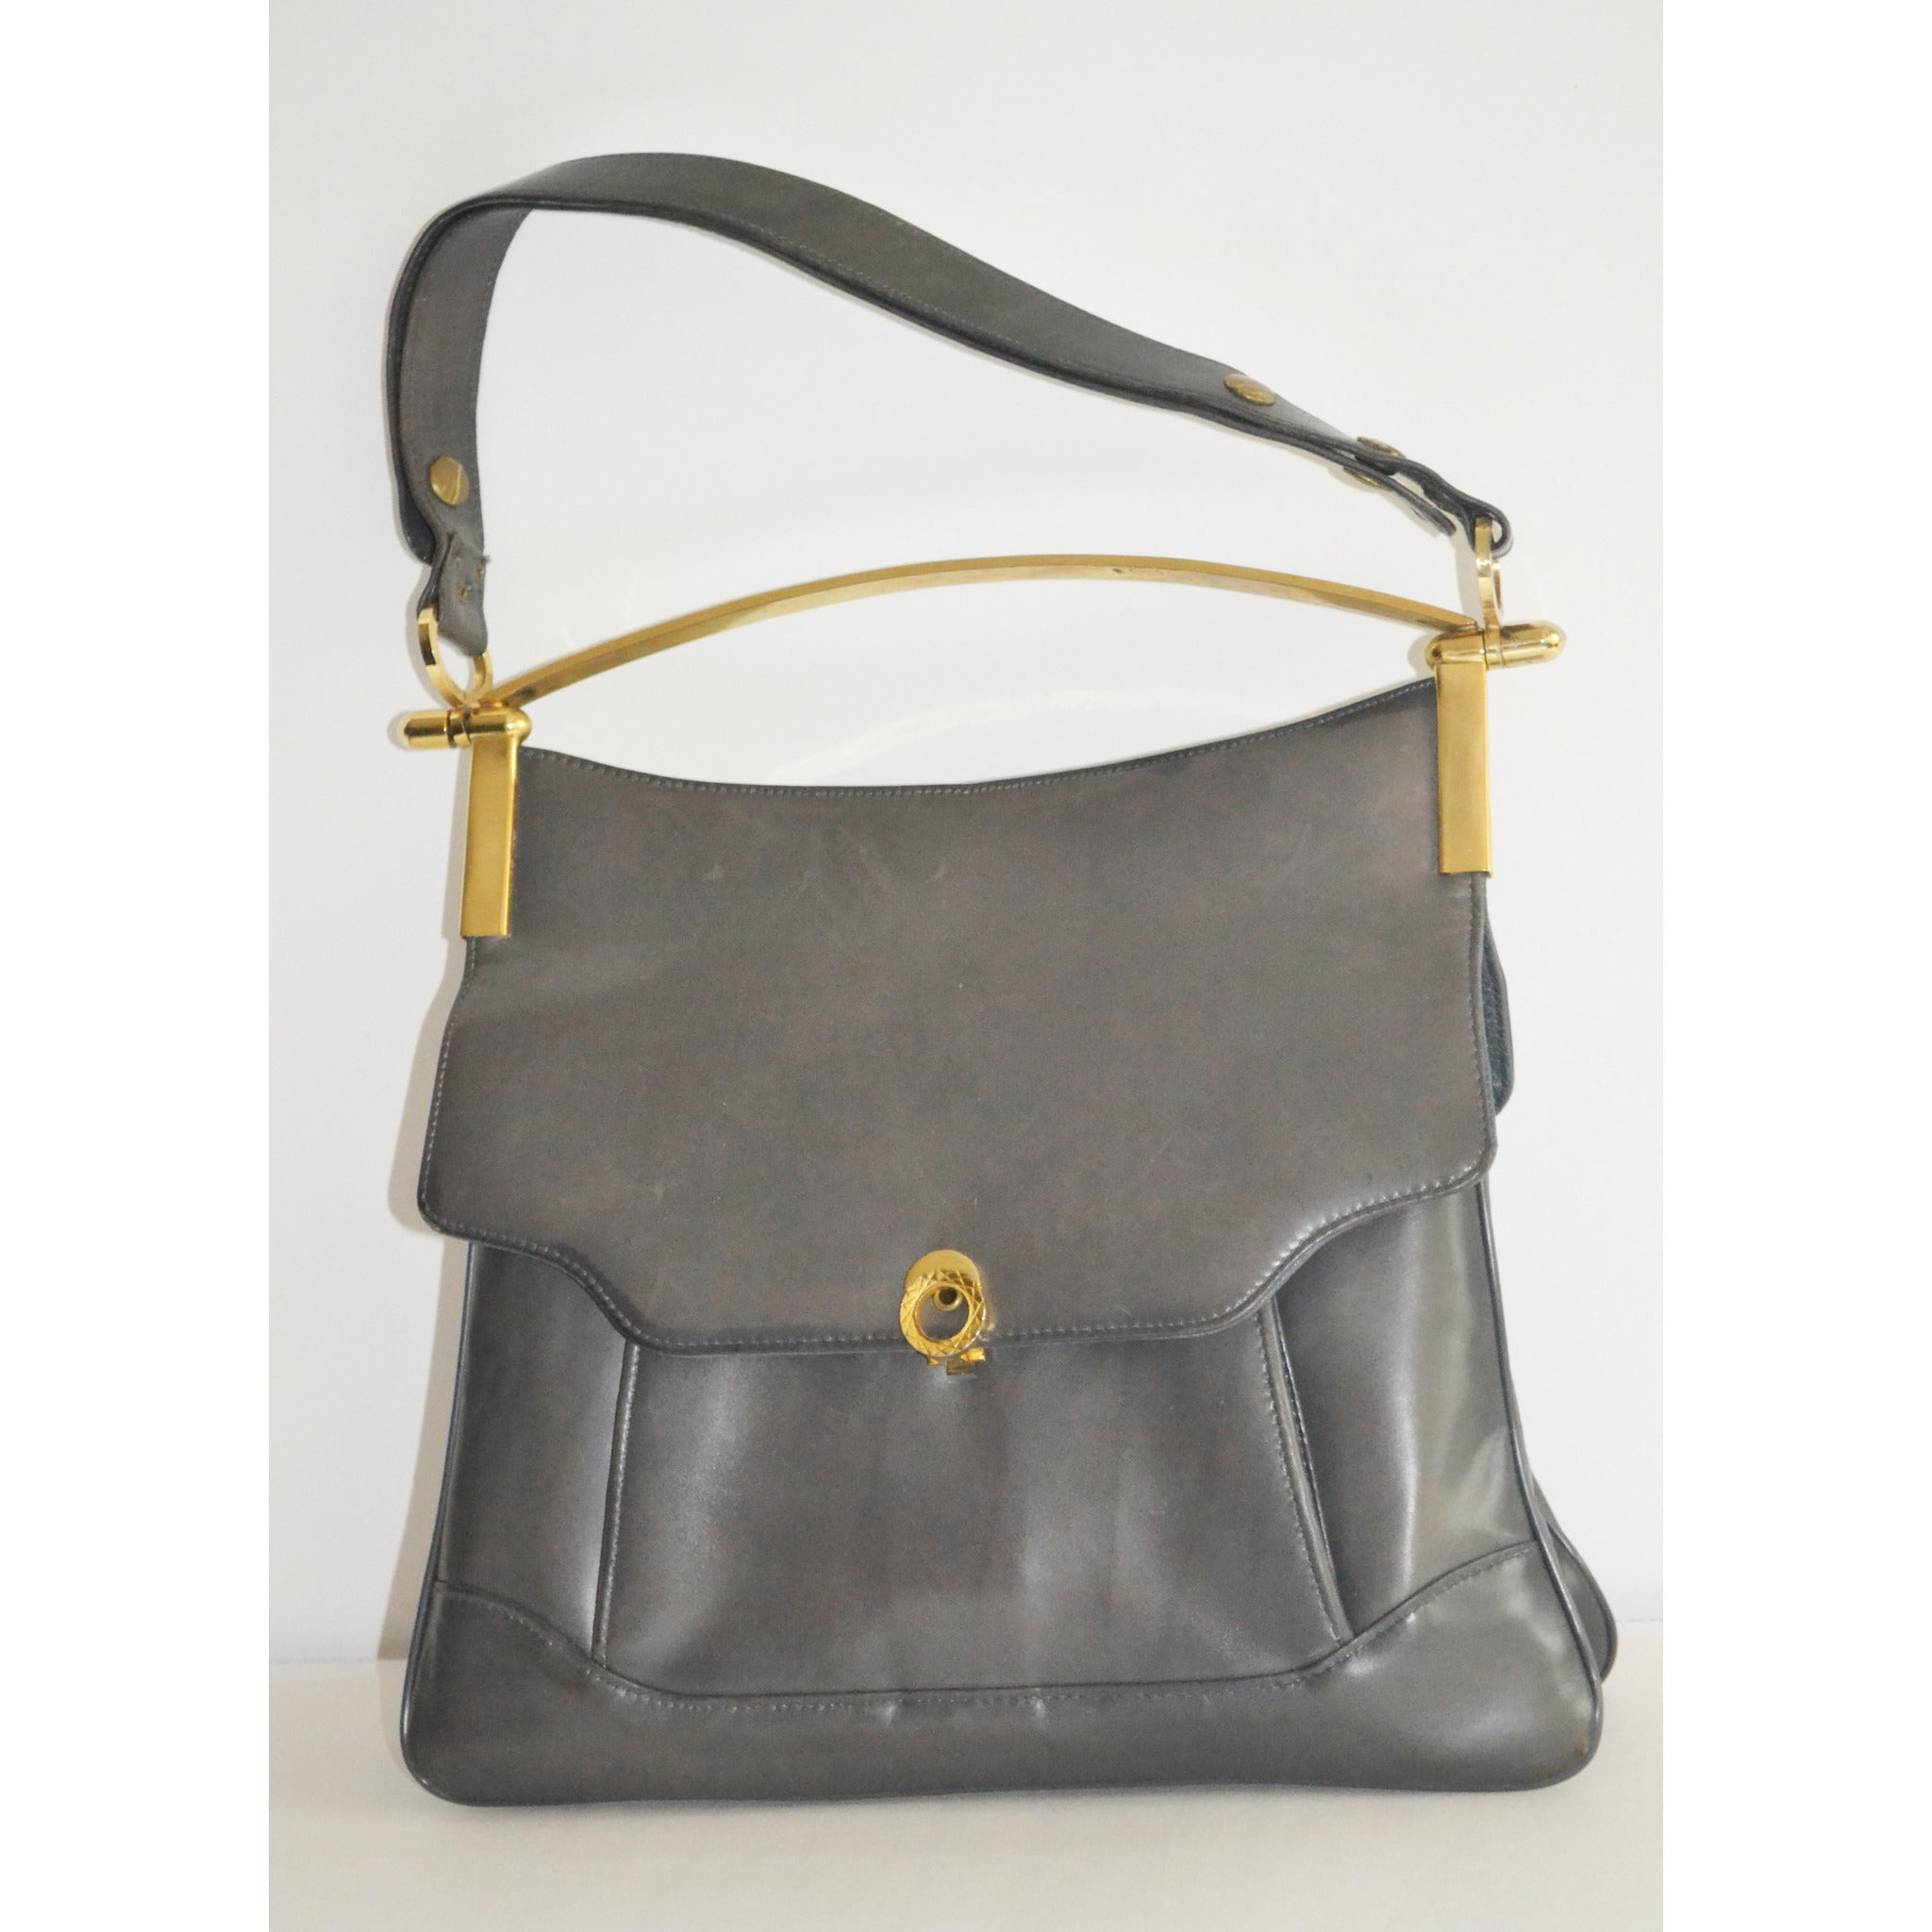 Vintage Grey Leather Pouch Structured Handbag